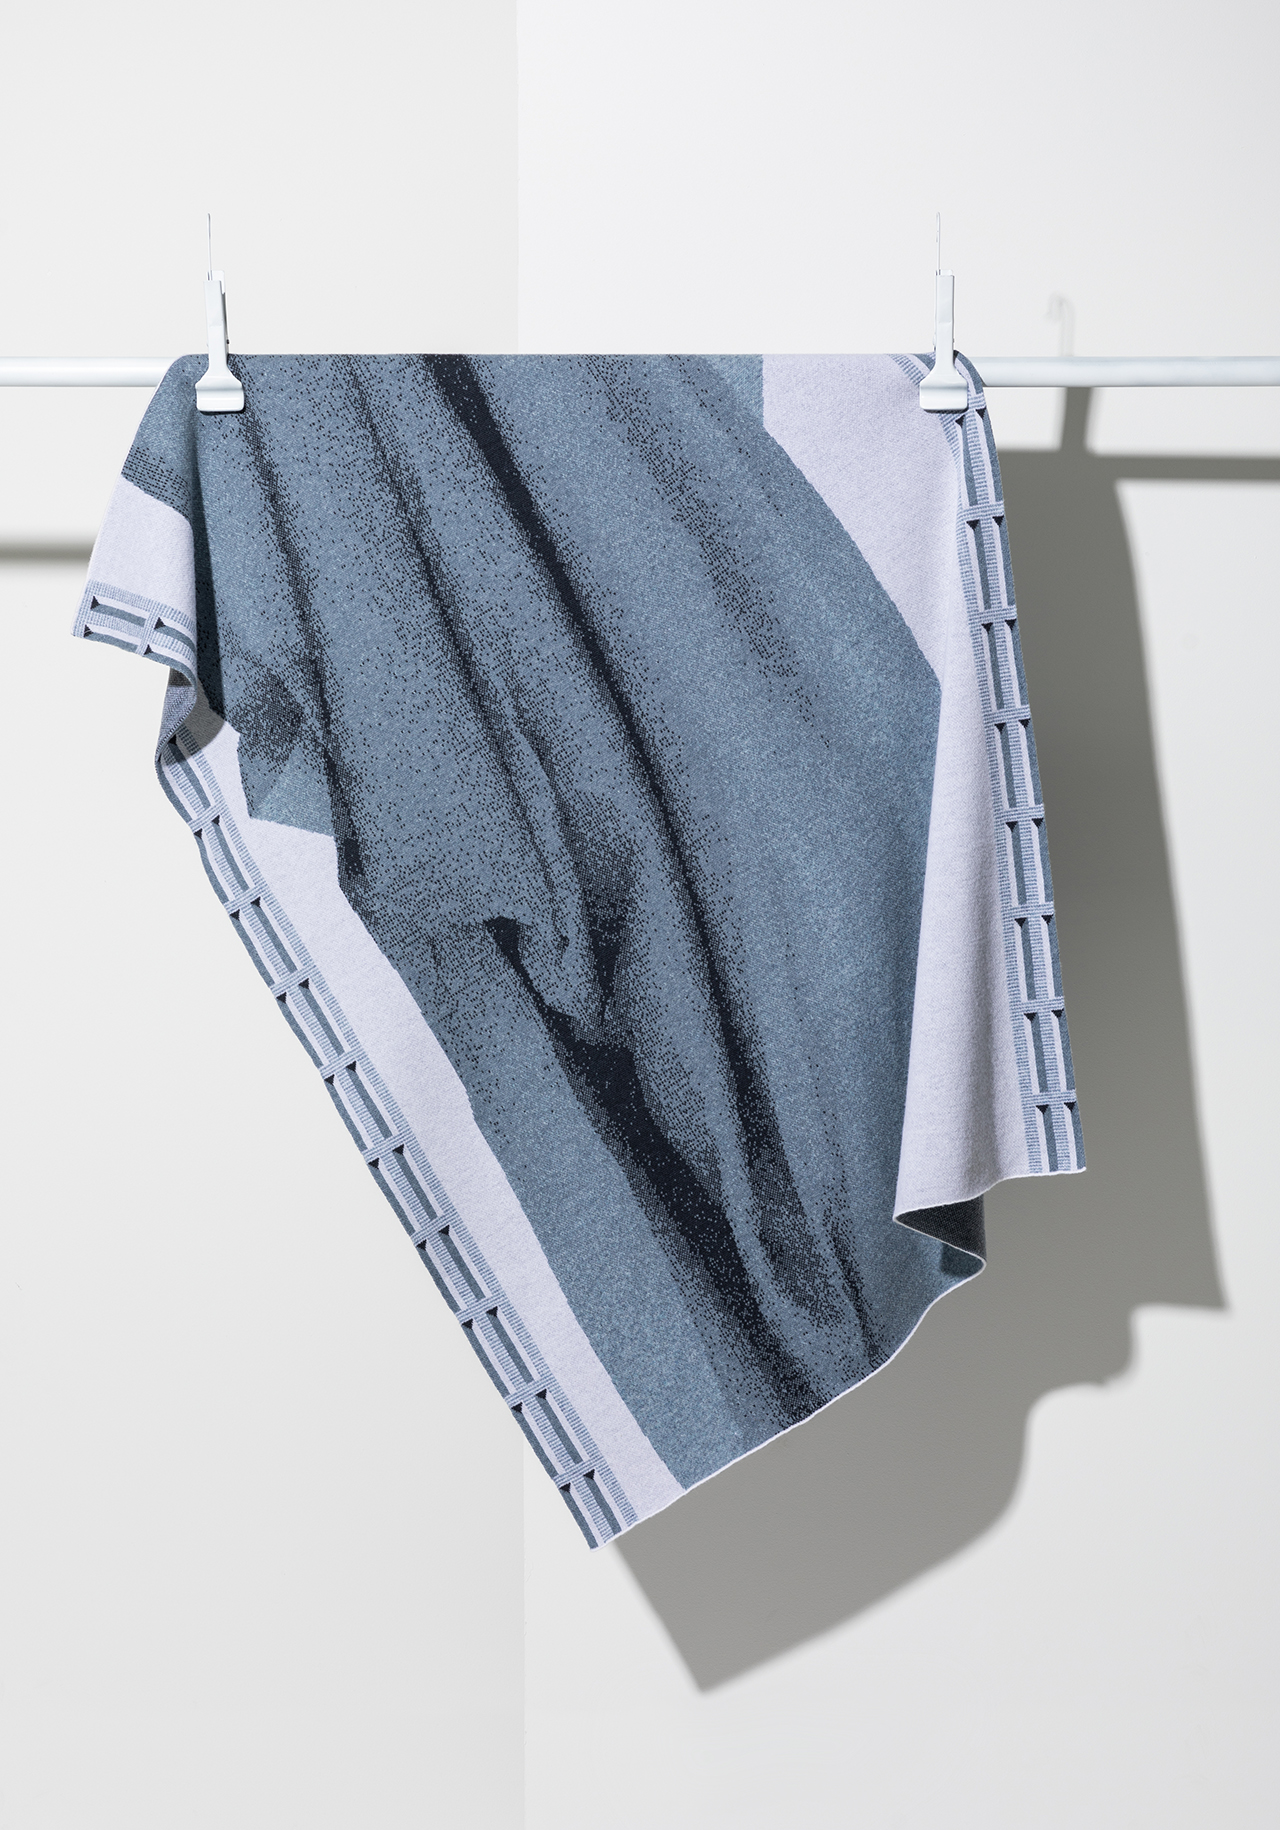 blue and grey textile hanging on wall